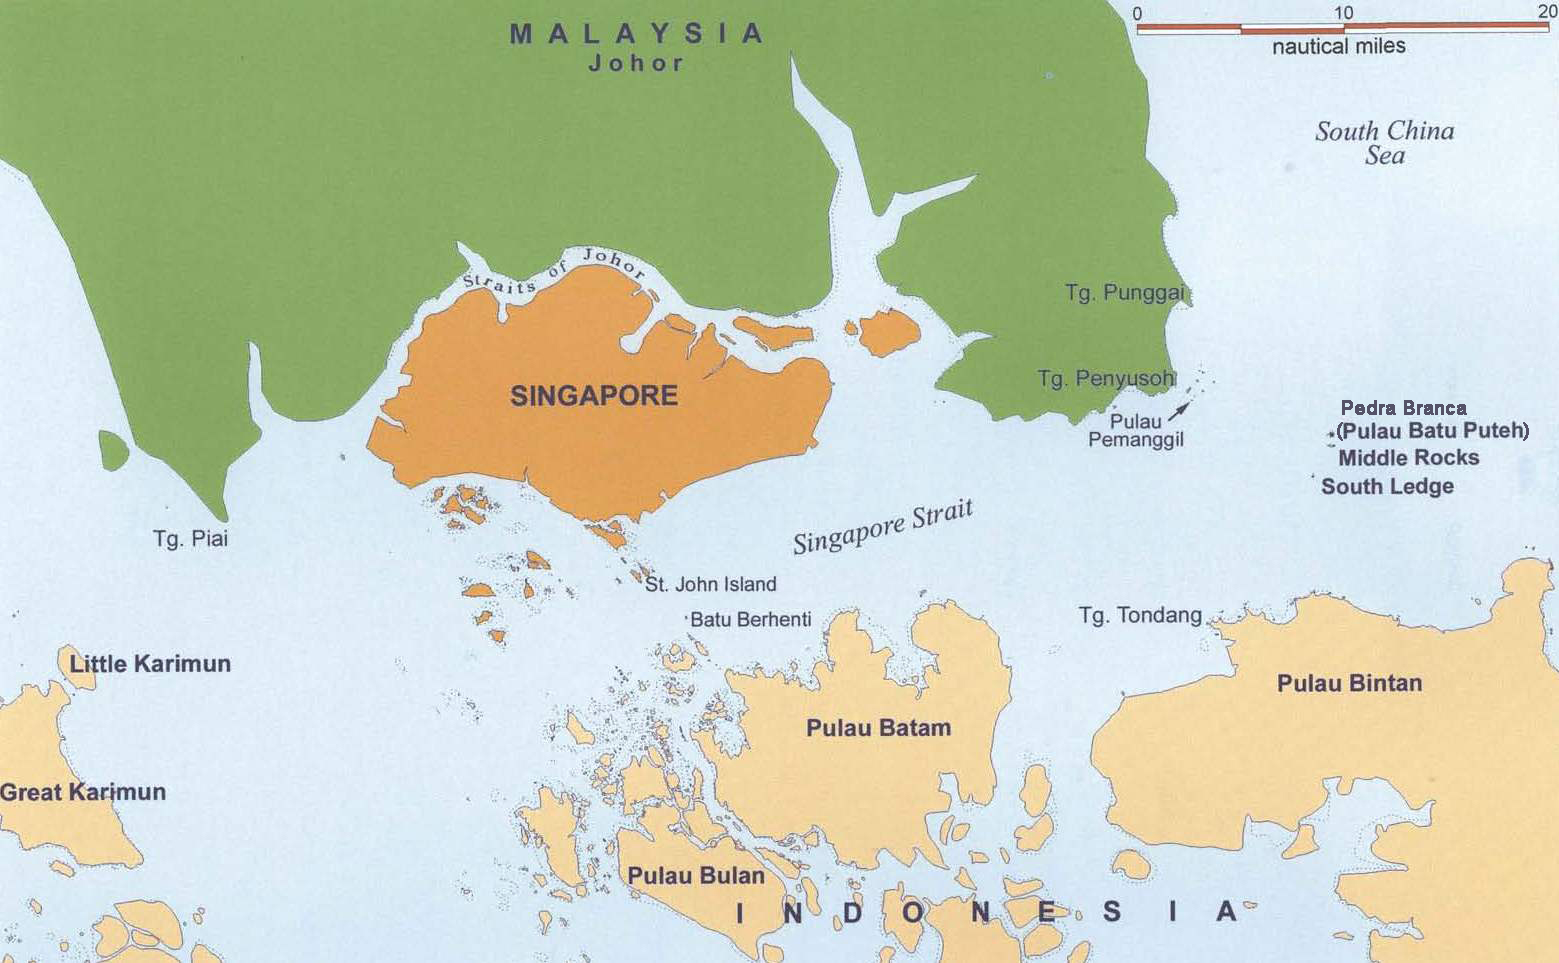 Passing of Sovereignty the MalaysiaSingapore Territorial Dispute